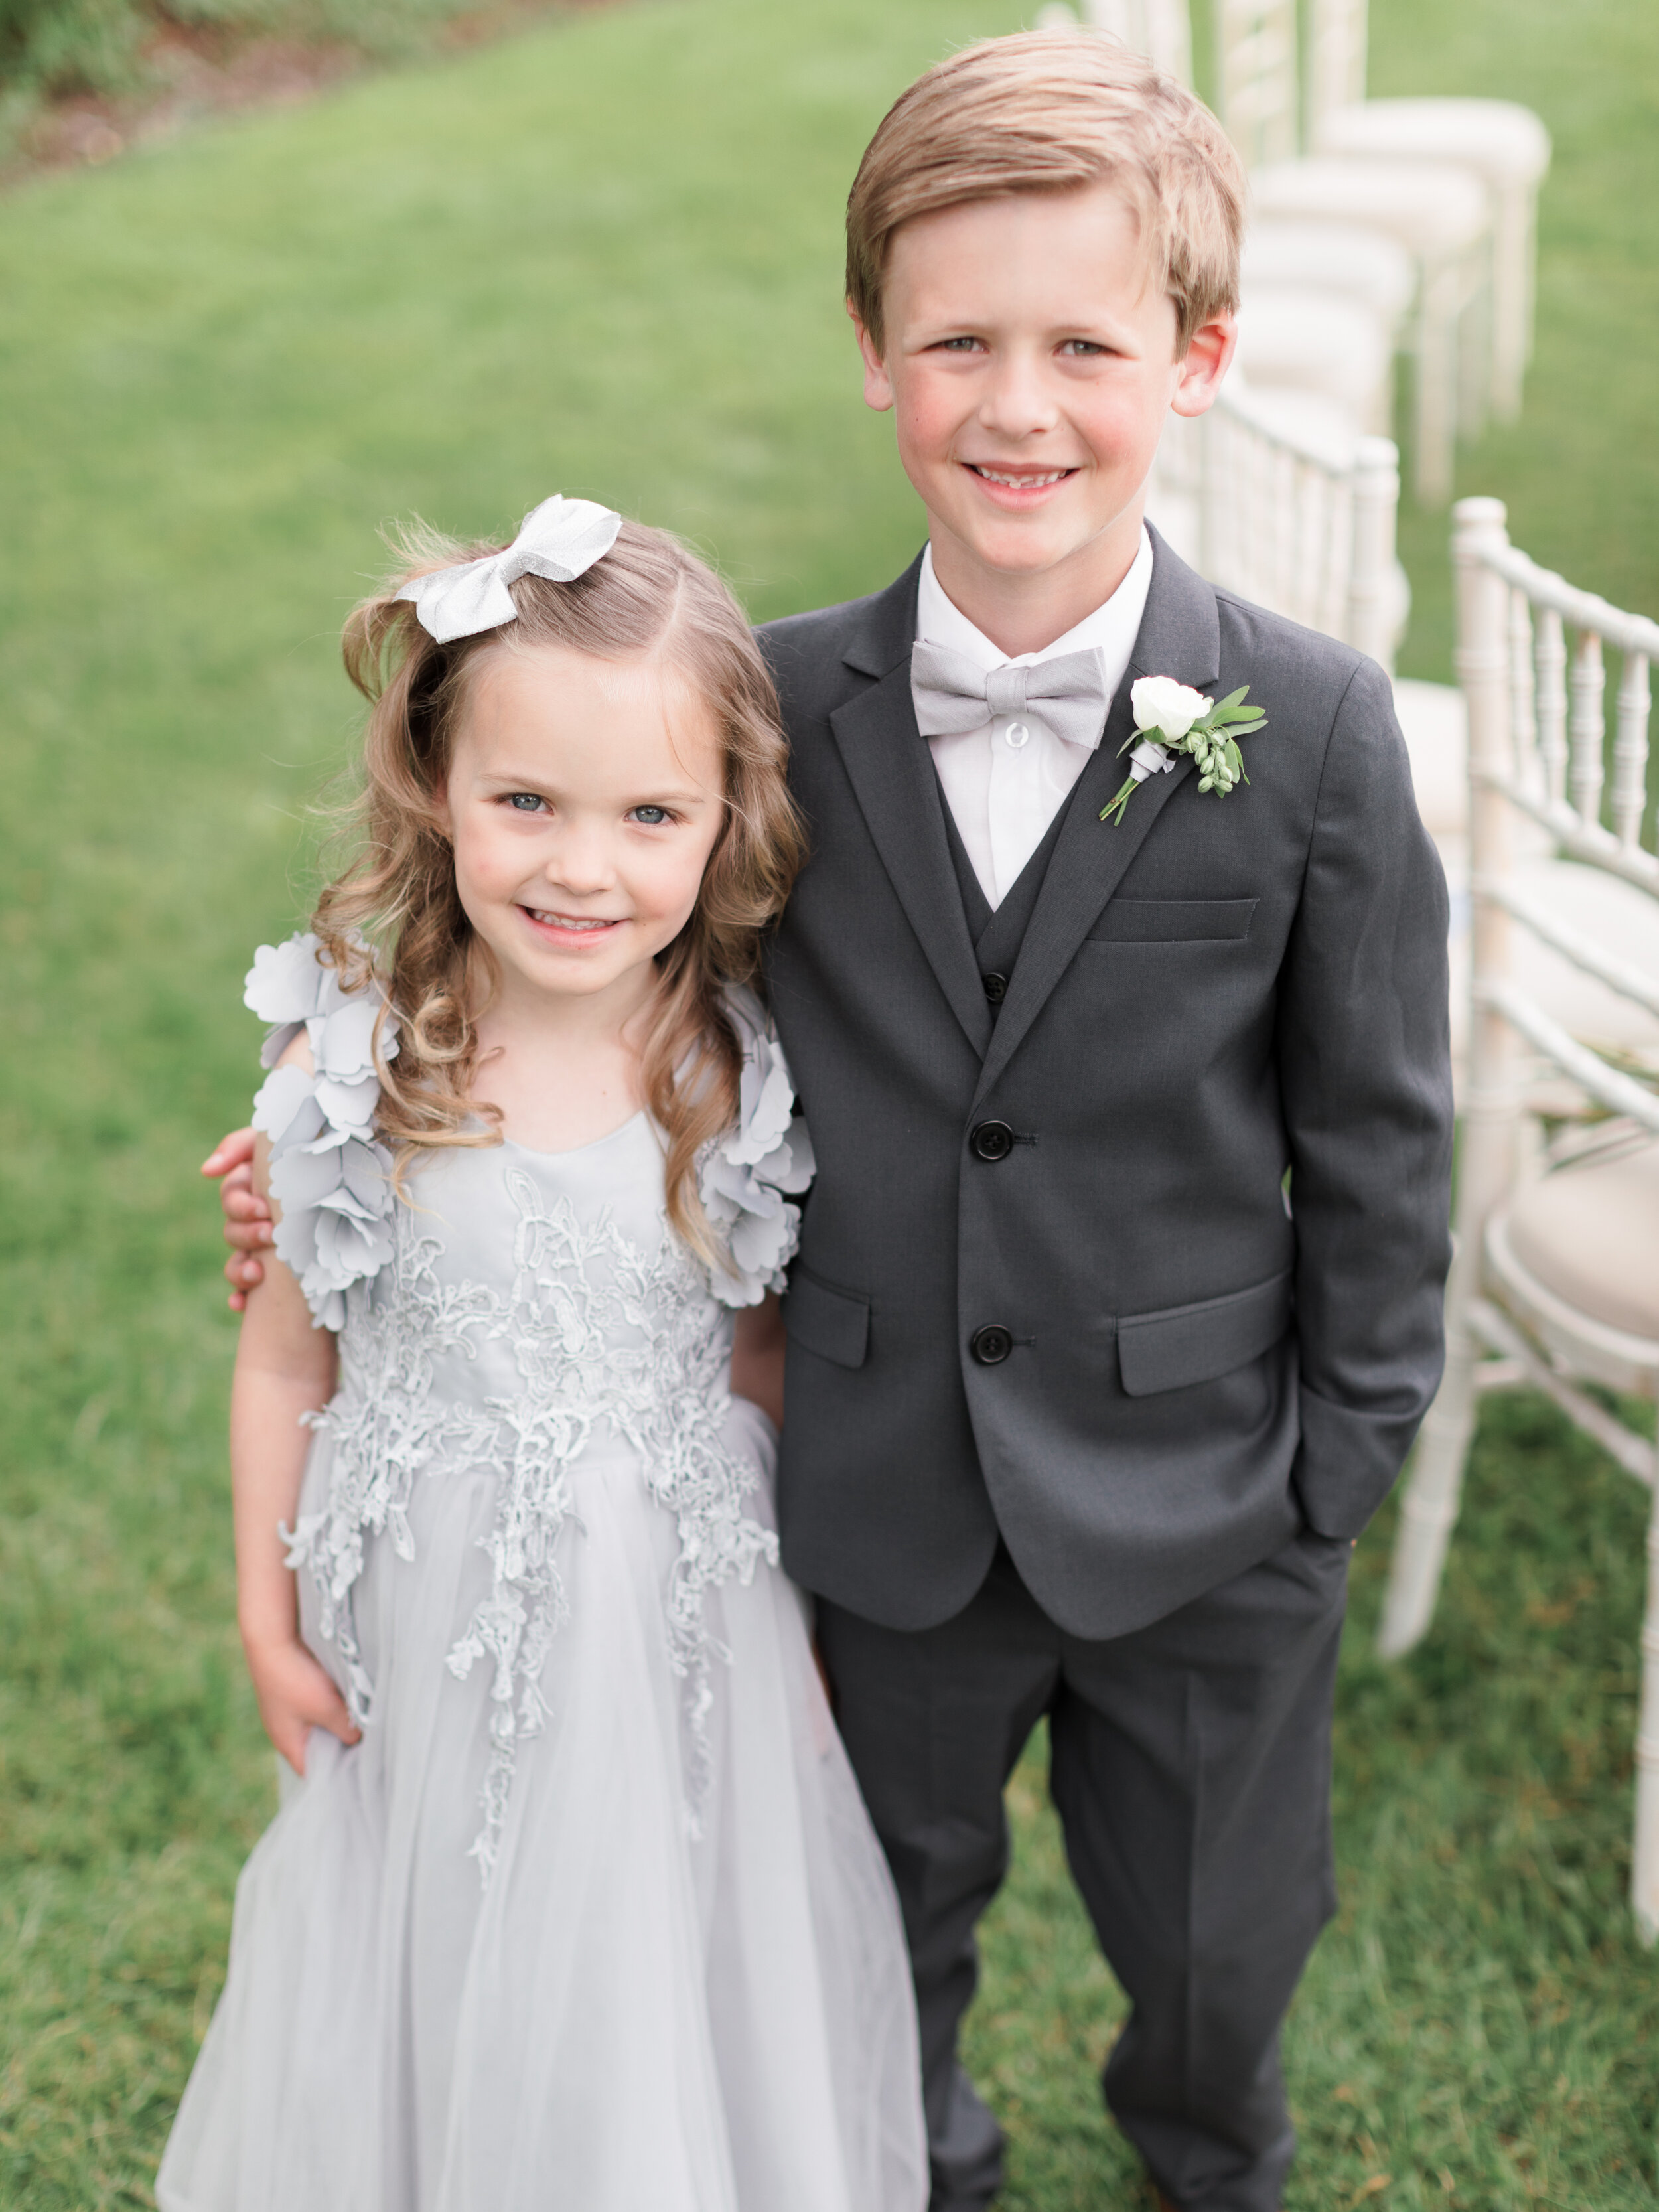 Bella-Botanica-Flowers-Molly-Carr-Photography-Ceremony-1Flowergirl-Pageboy-Buttonhole-.7JPG